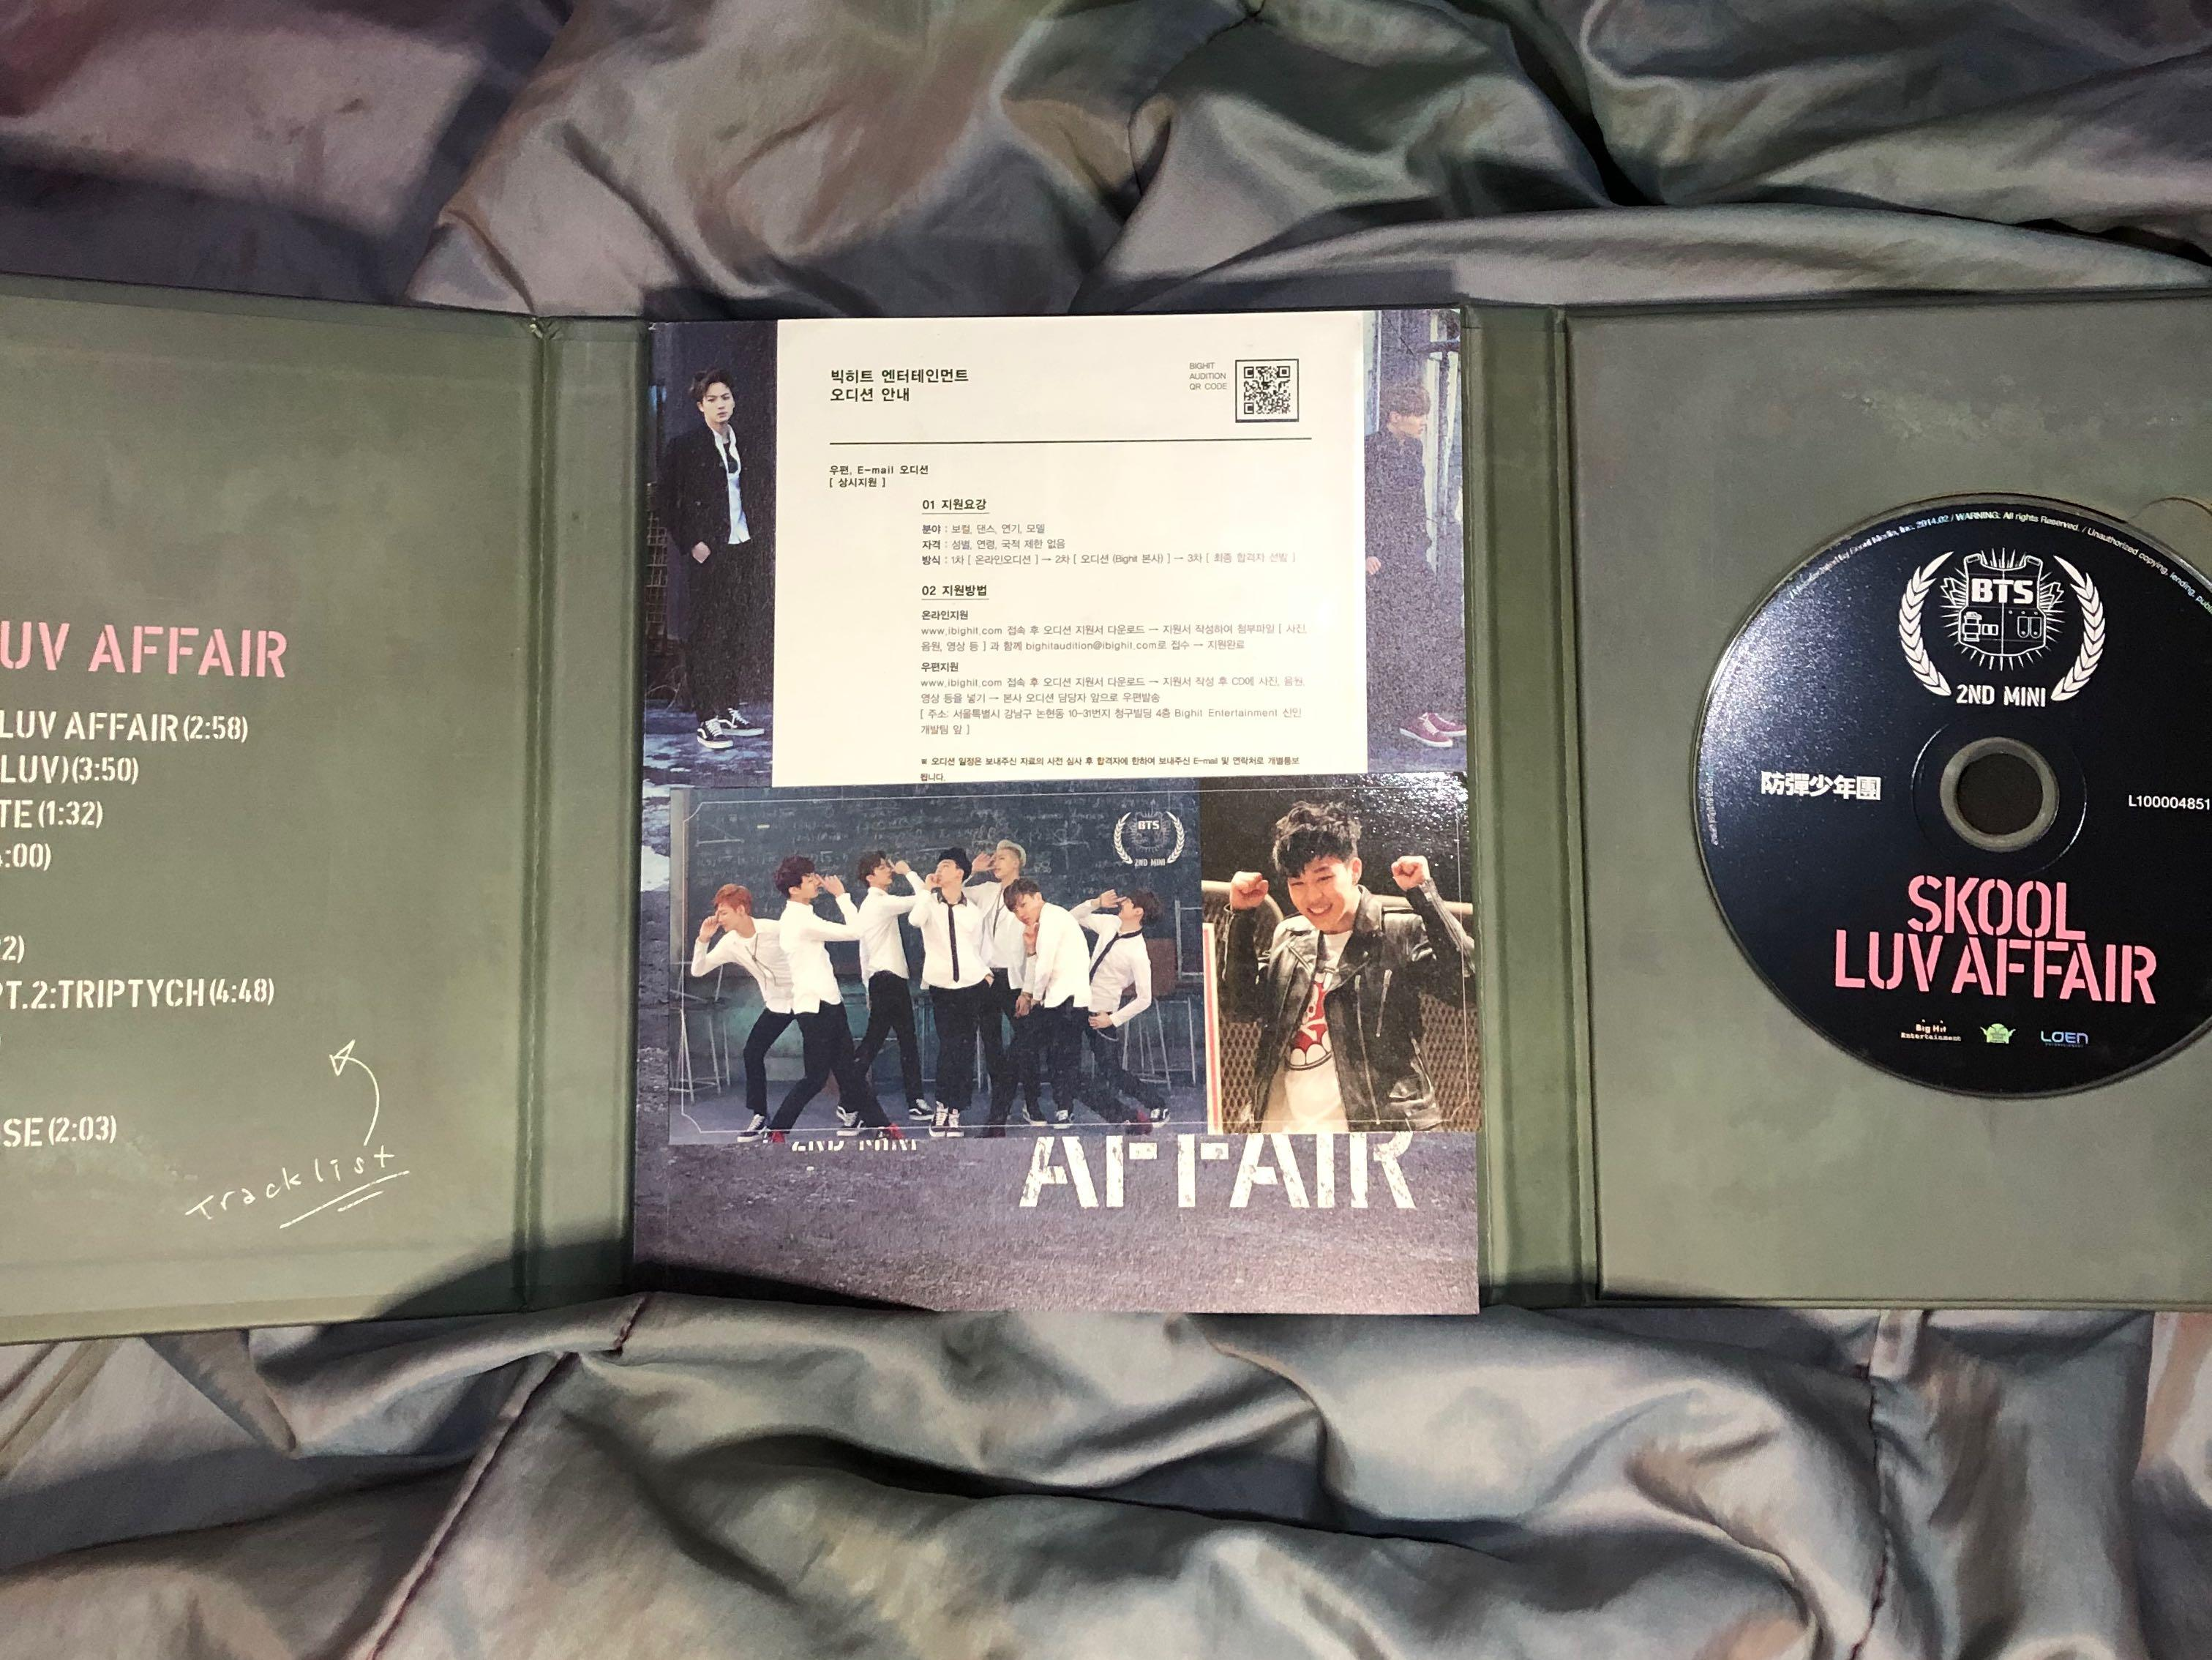 [preloved] SKOOL LUV AFFAIR BTS ALBUM + jimin photocard + BTS sticker